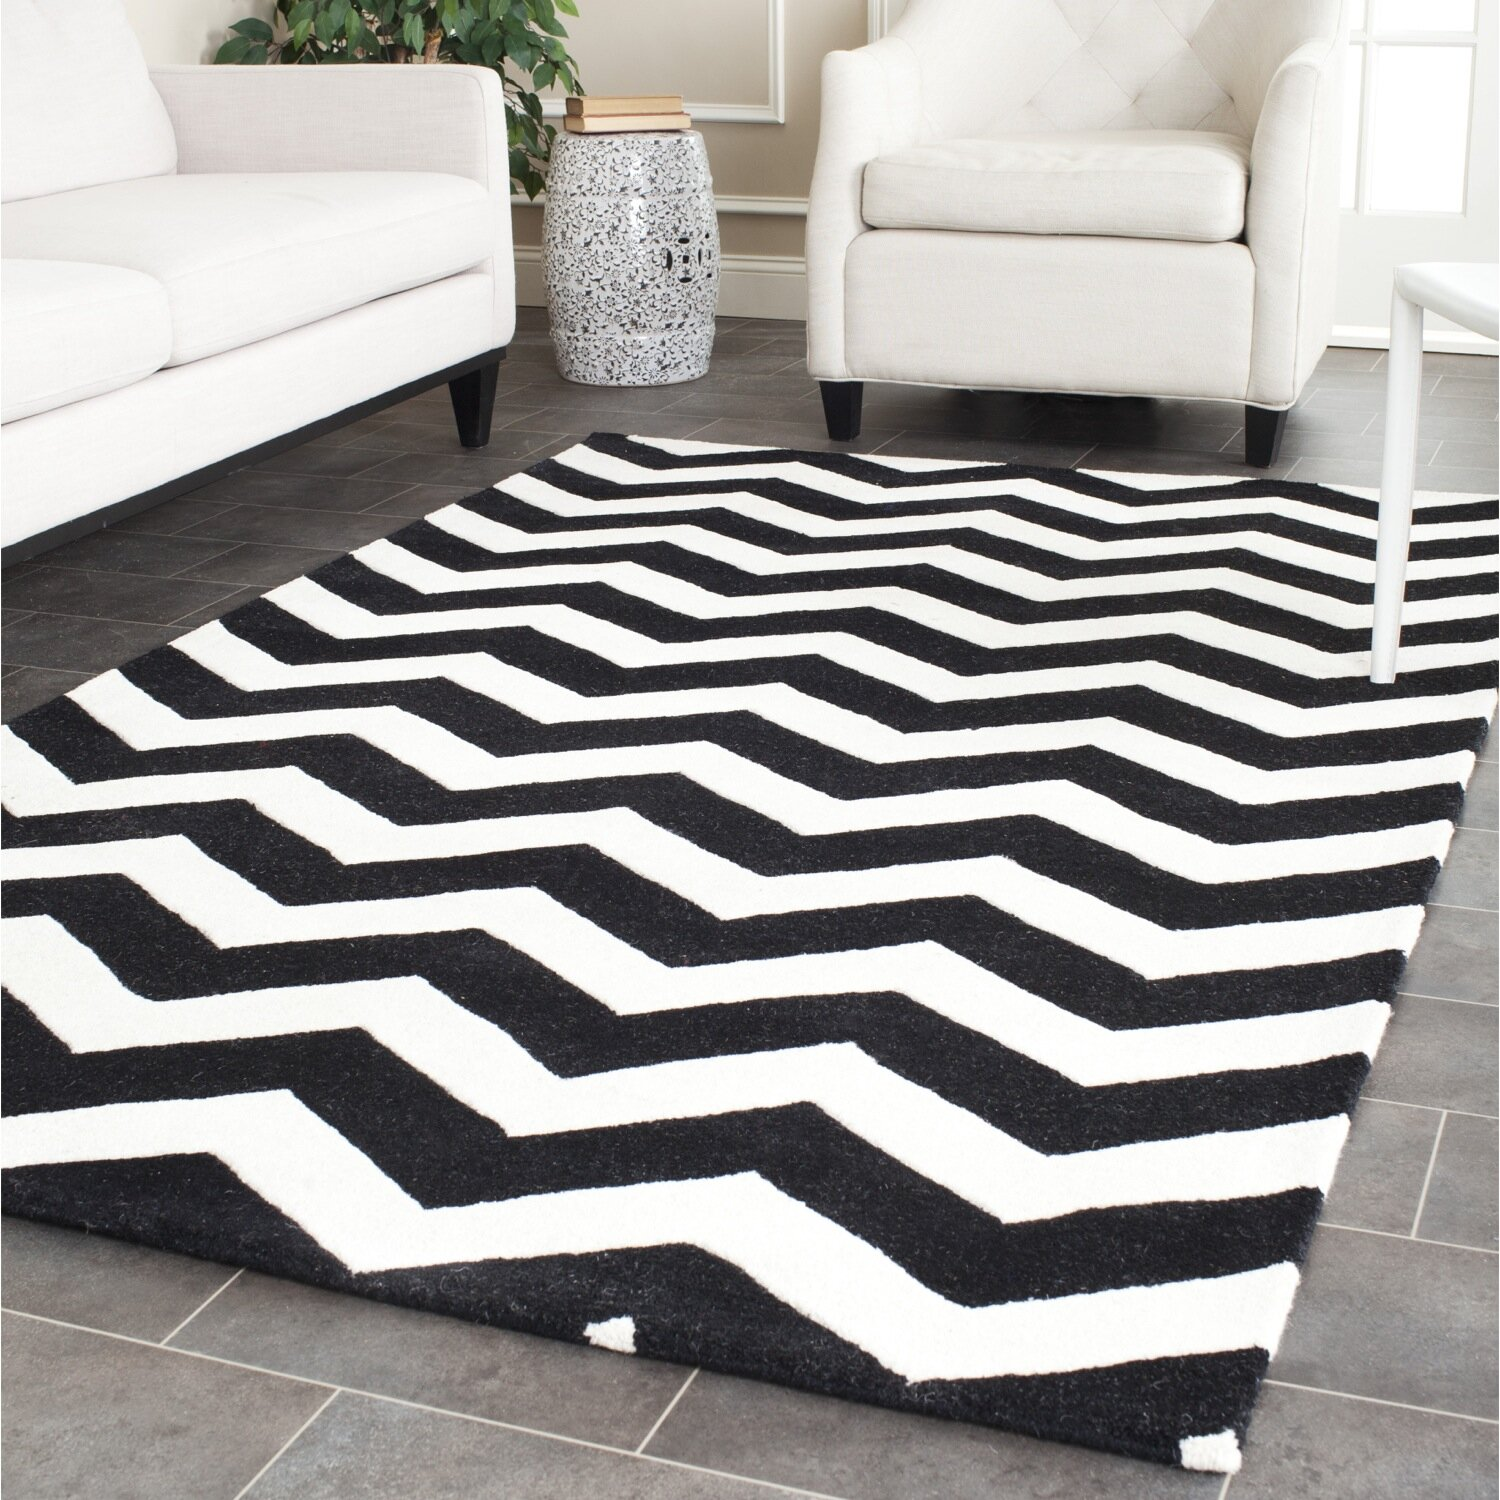 Chevron Kitchen Rug: Chatham Chevron Ivory/Black Area Rug